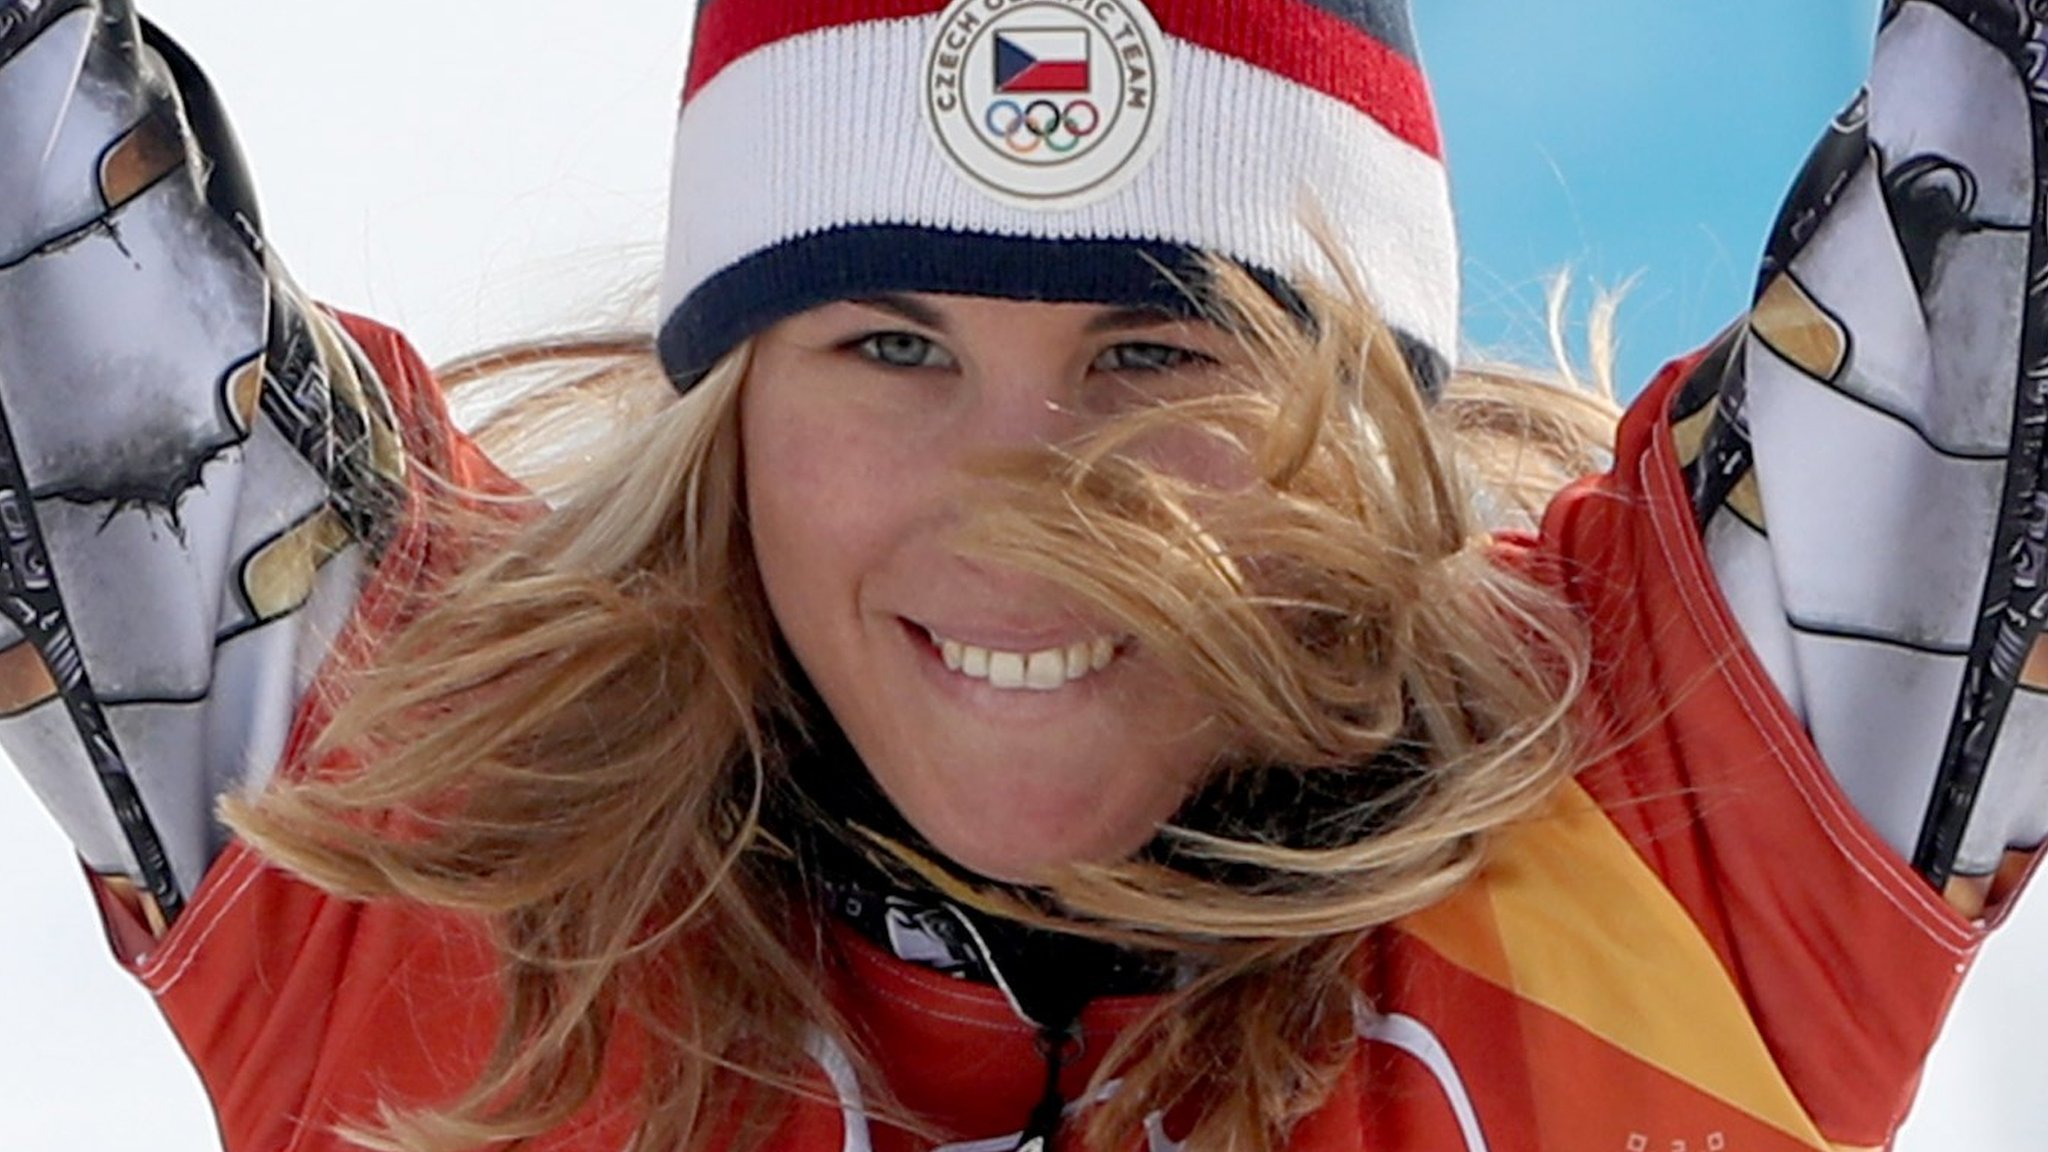 Winter Olympics: Ester Ledecka wins golds in two different sports